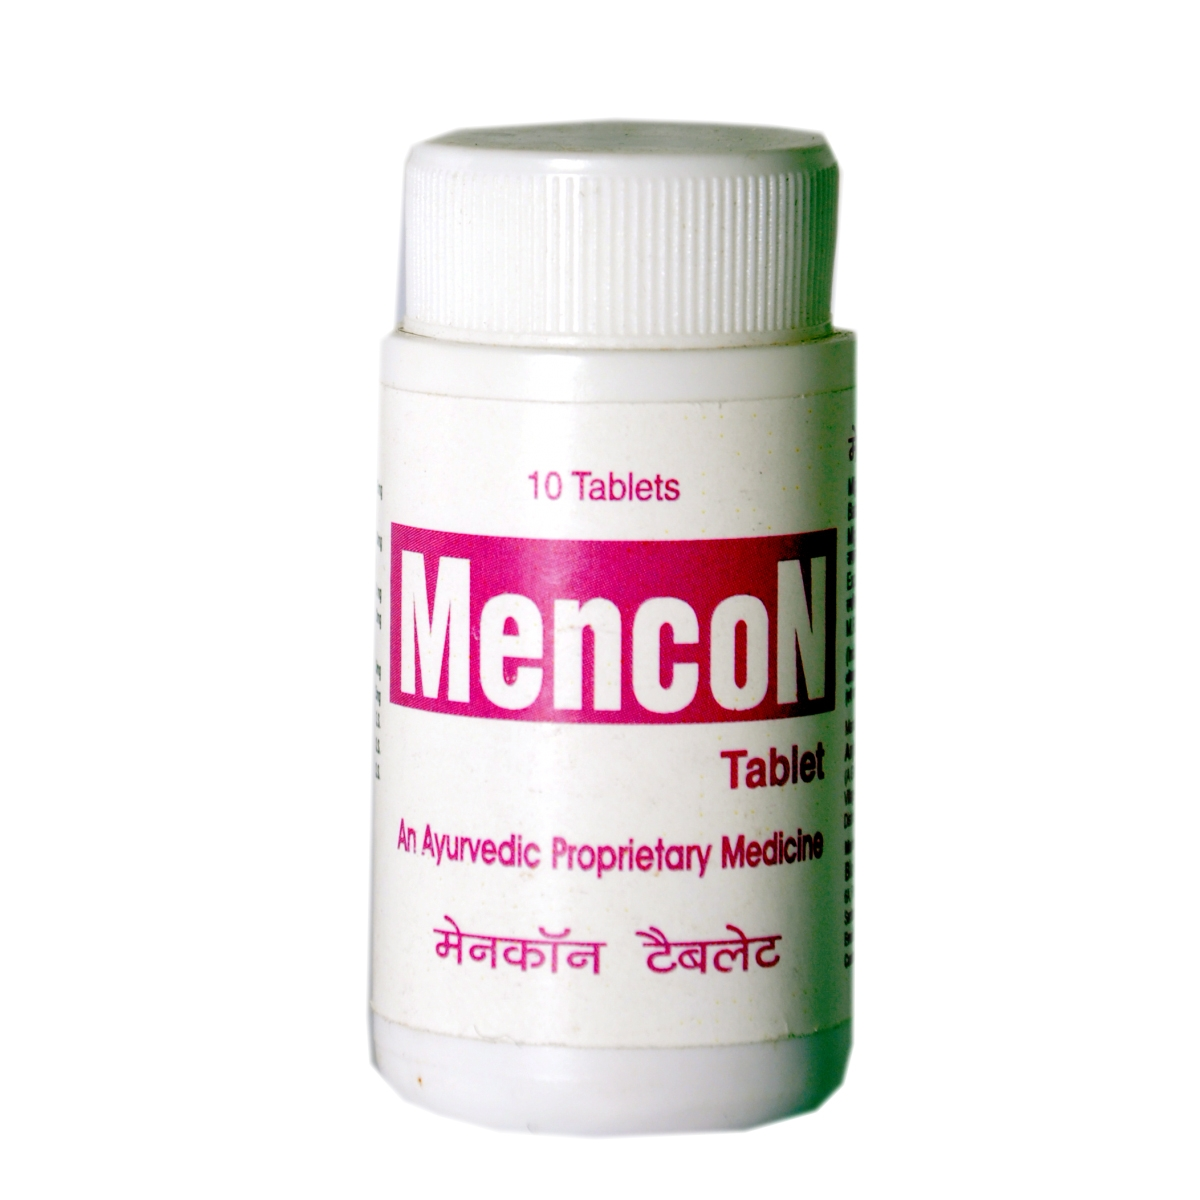 Mencon Tablet In Bijapur